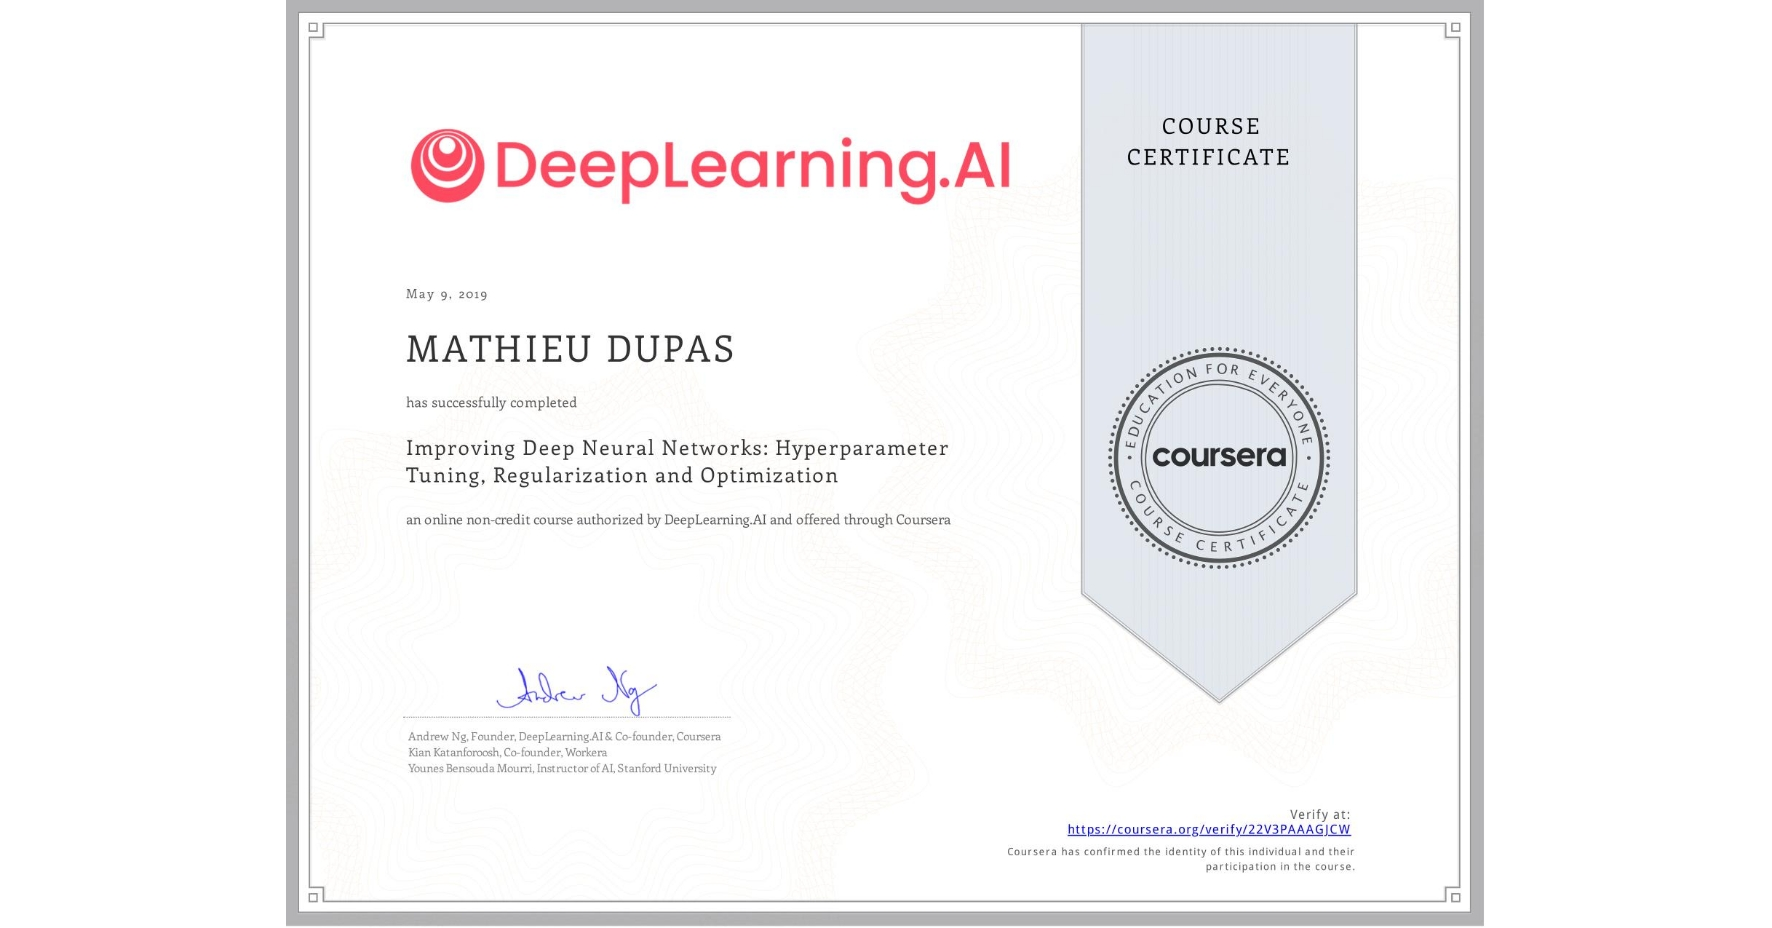 View certificate for MATHIEU DUPAS, Improving Deep Neural Networks: Hyperparameter Tuning, Regularization and Optimization, an online non-credit course authorized by DeepLearning.AI and offered through Coursera